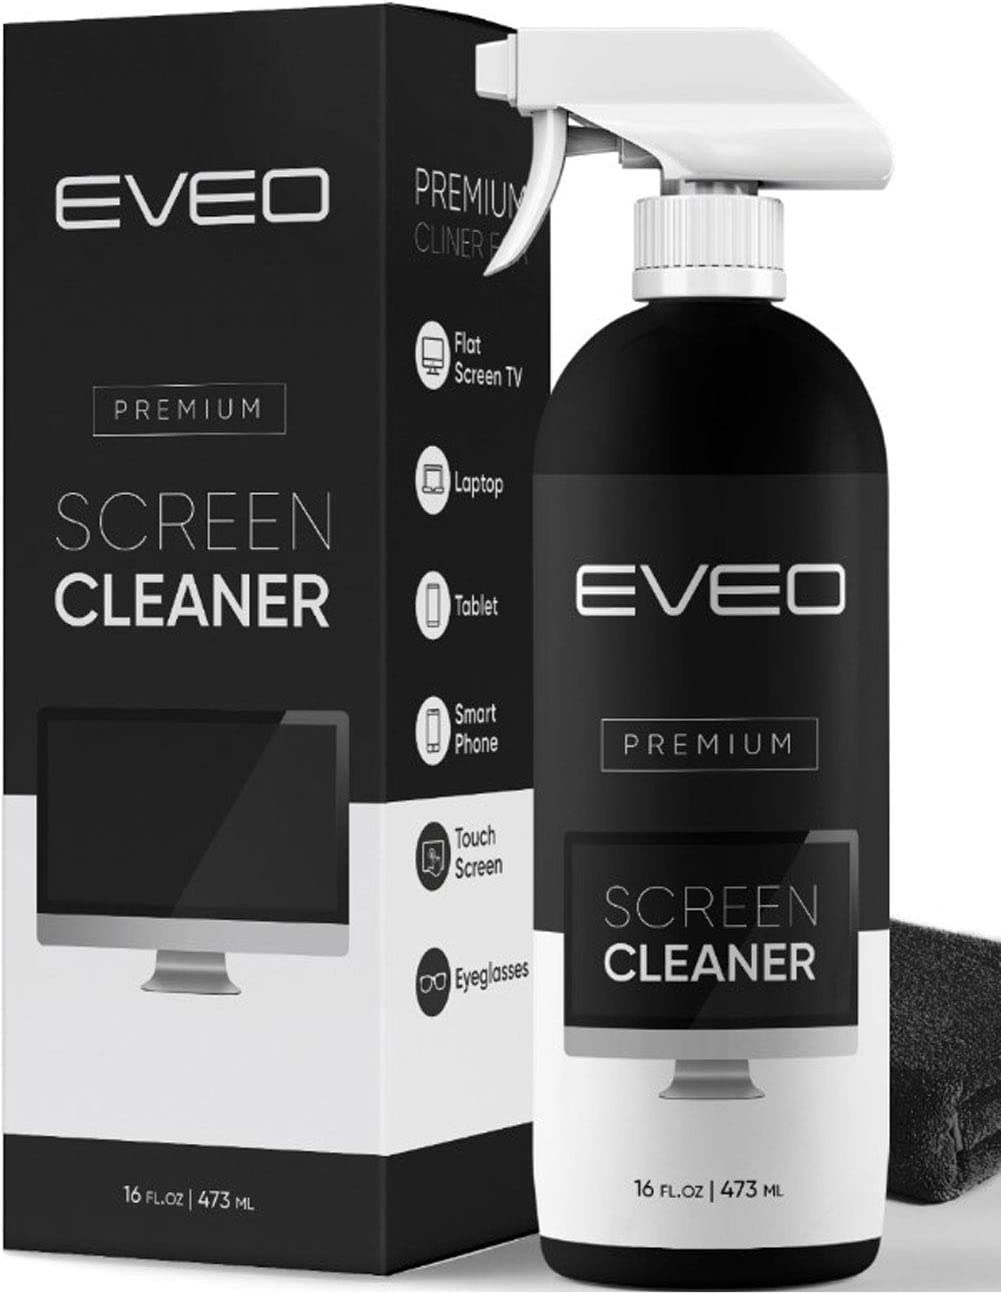 Screen Cleaner Spray - TV Screen Cleaner, Computer Screen Cleaner Laptop, Phone, Ipad - Computer Cleaning kit Electronic Cleaner - Microfiber Cloth Included, Large 16 Ounce Bottle: Home Audio & Theater